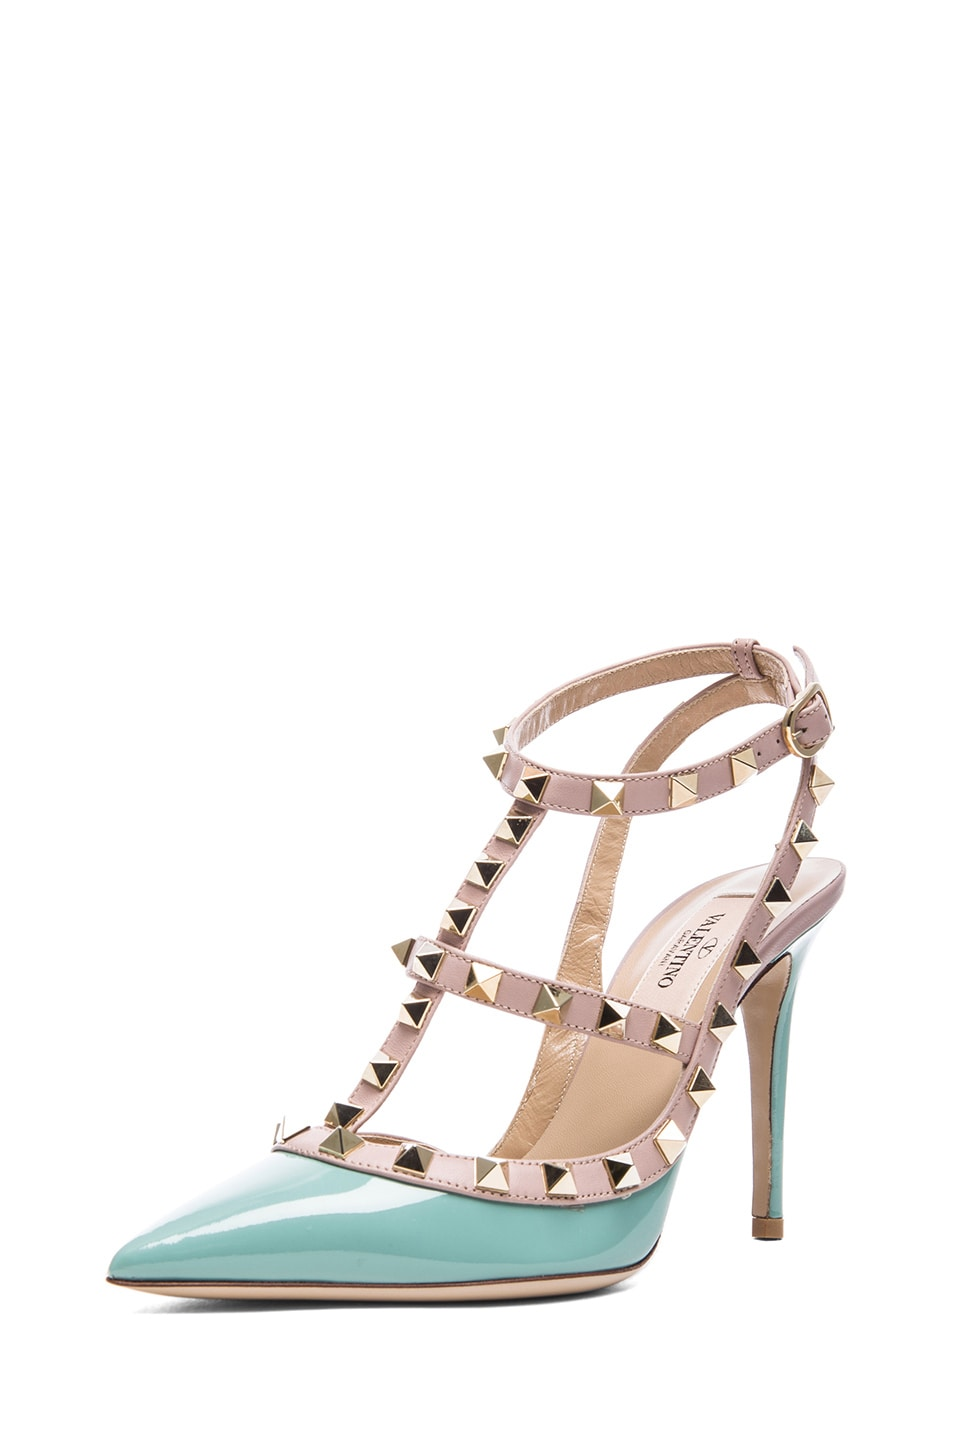 Image 2 of Valentino Rockstud Patent Leather Slingback T.100 in Dusty Sky